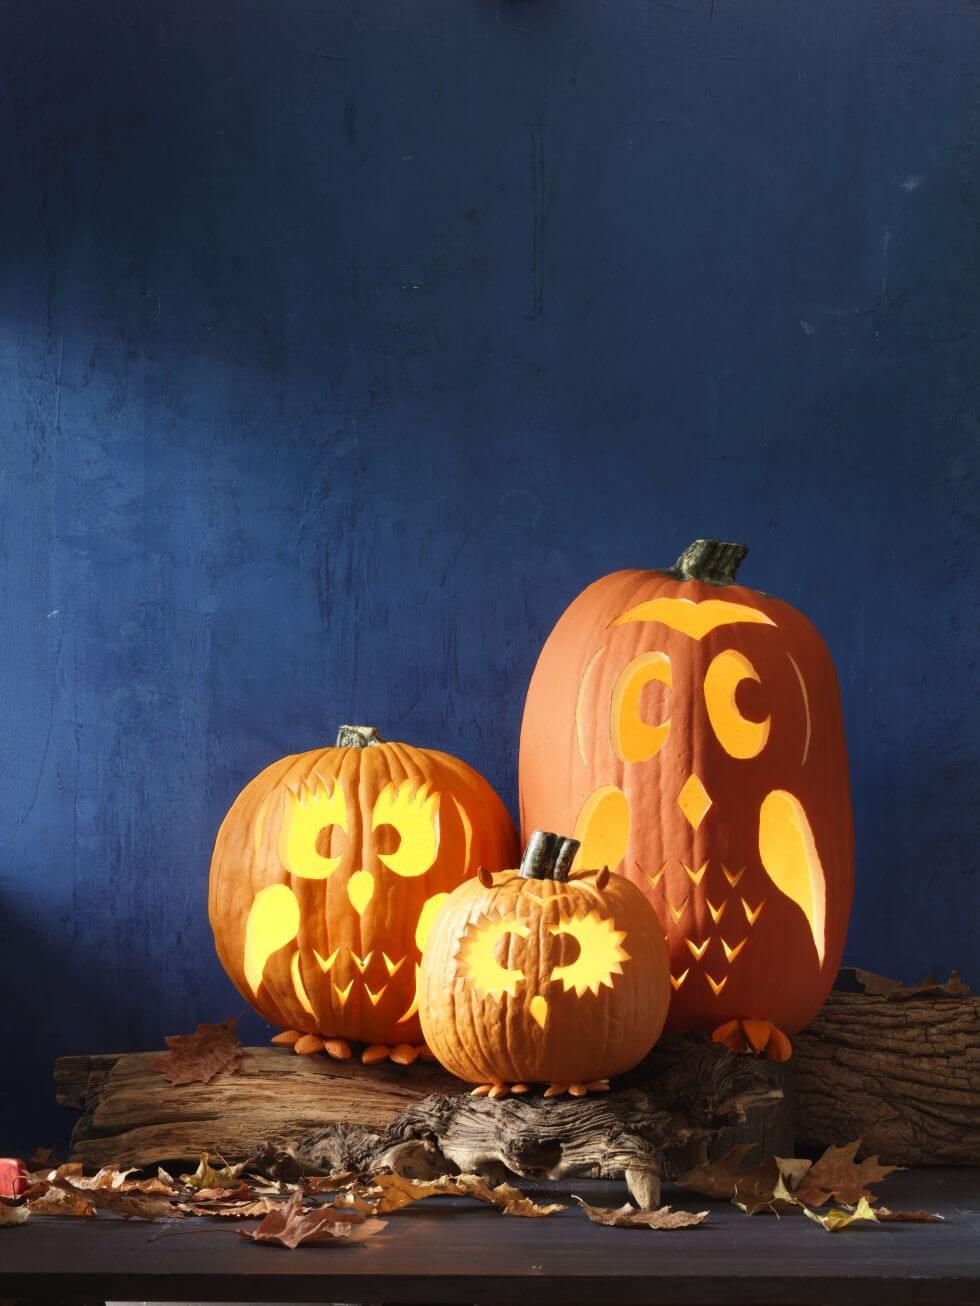 30 Pumpkin Carving Ideas You Will Absolutely Love - Crafts On Fire ...